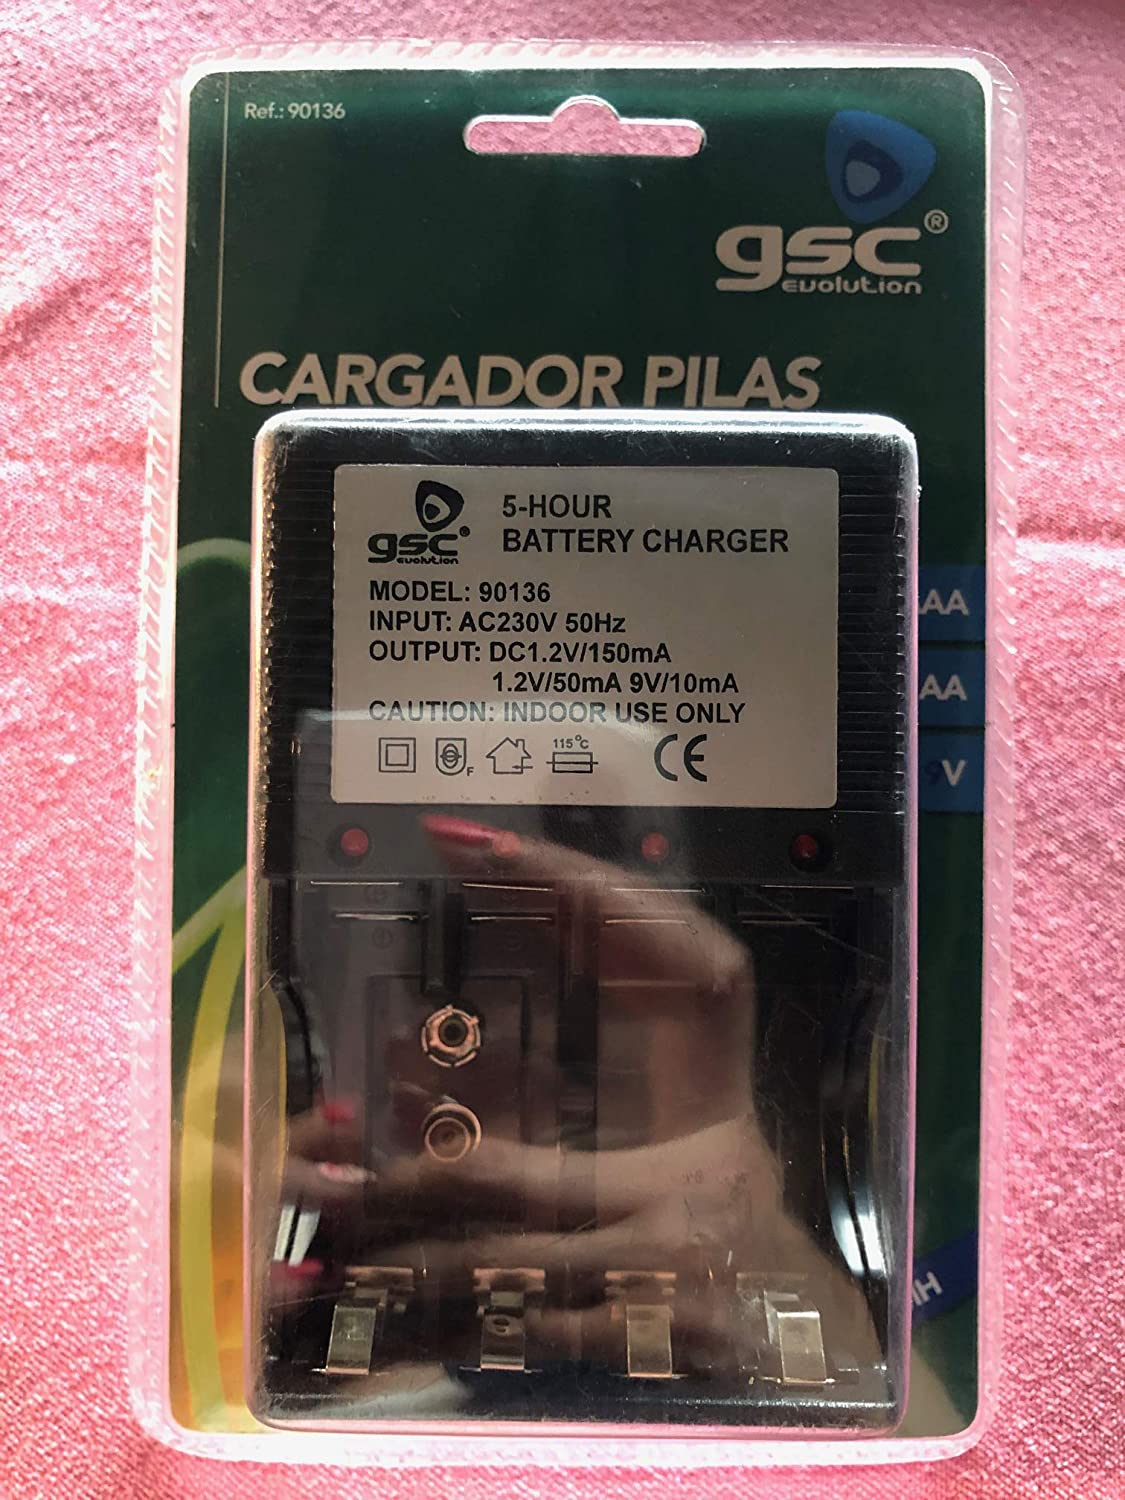 Cargador pilas, R3AAA, R6AA, 9V, 5-hour Battery charger ...